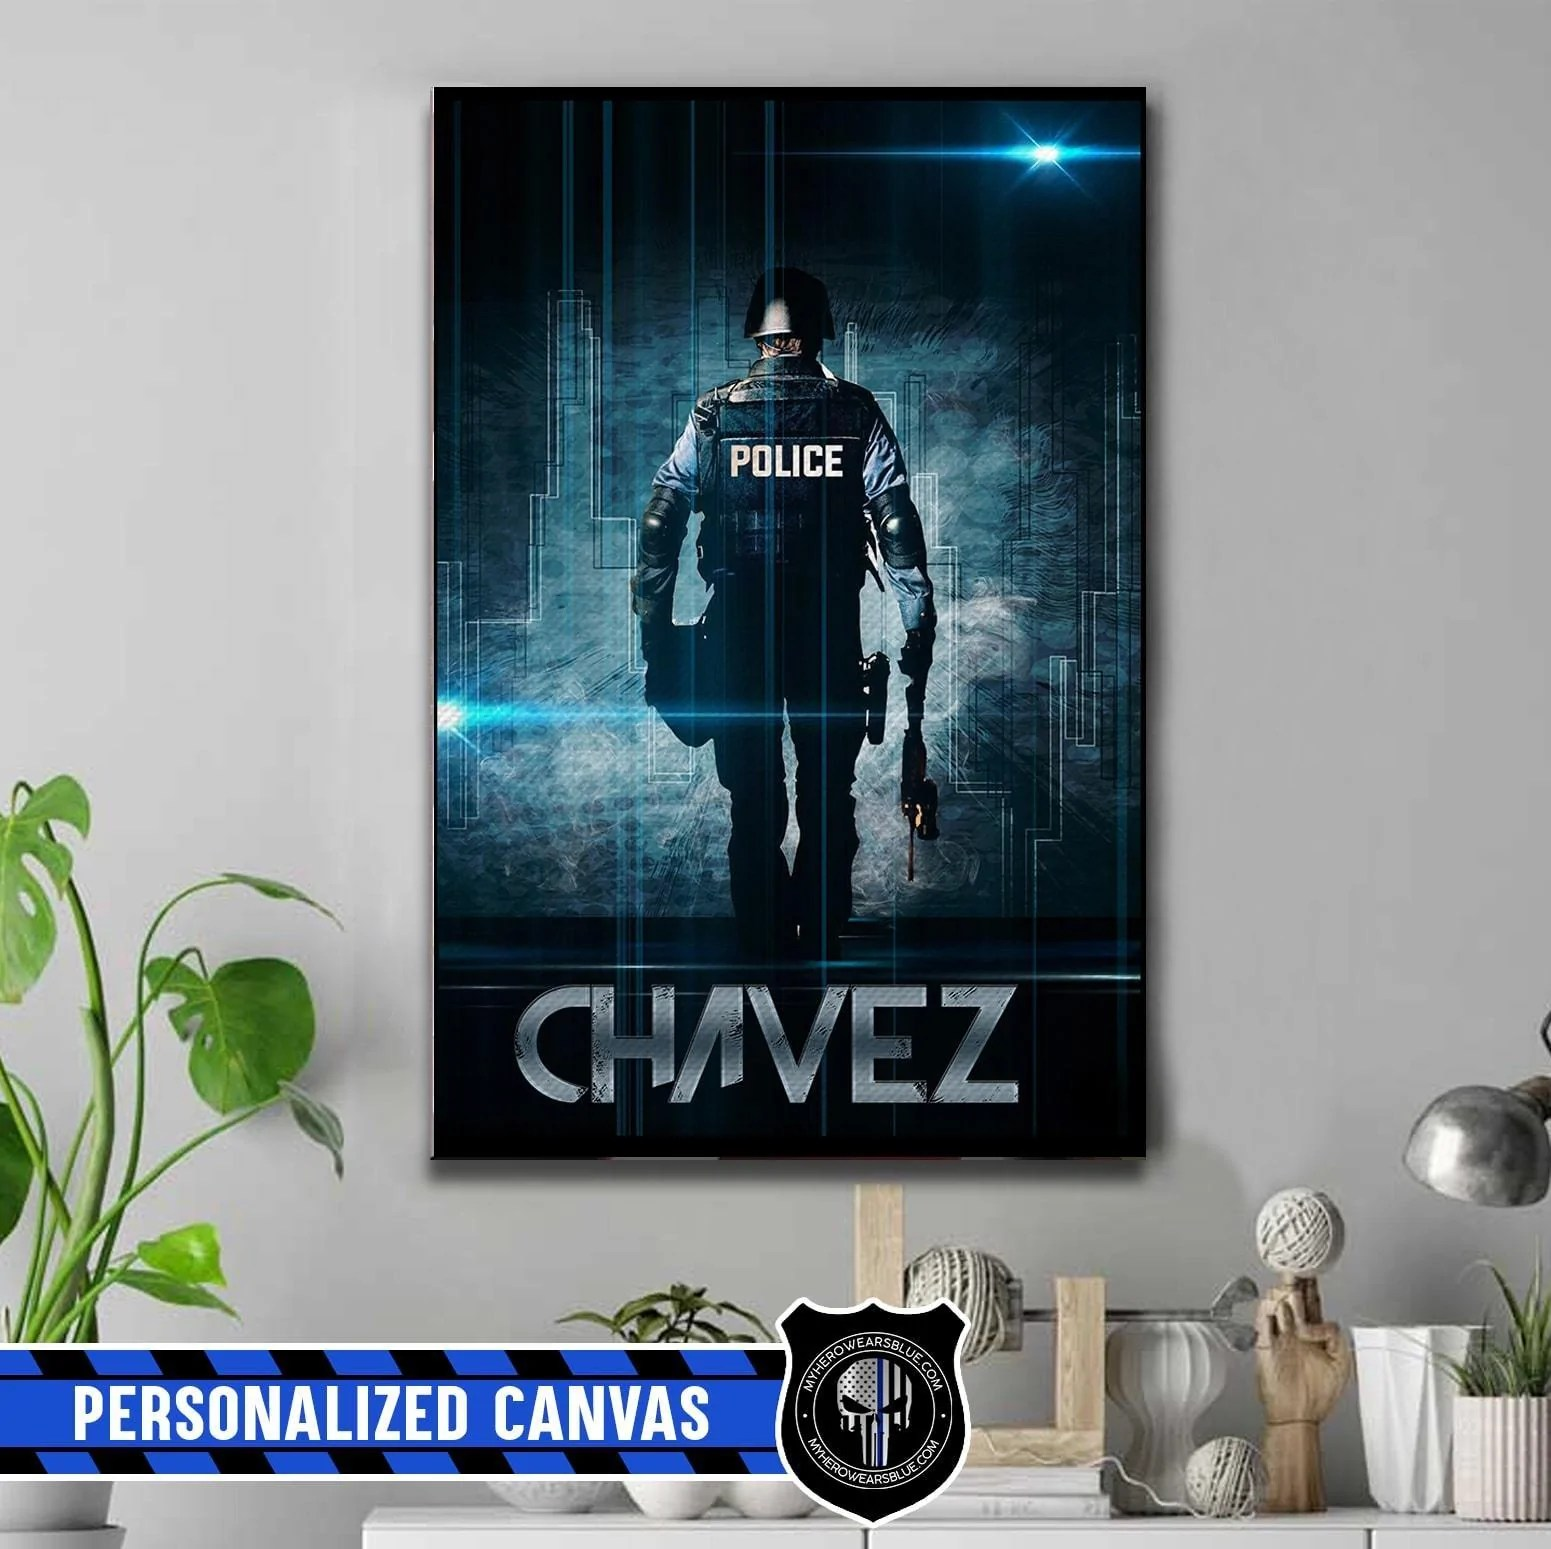 personalized canvas police officer